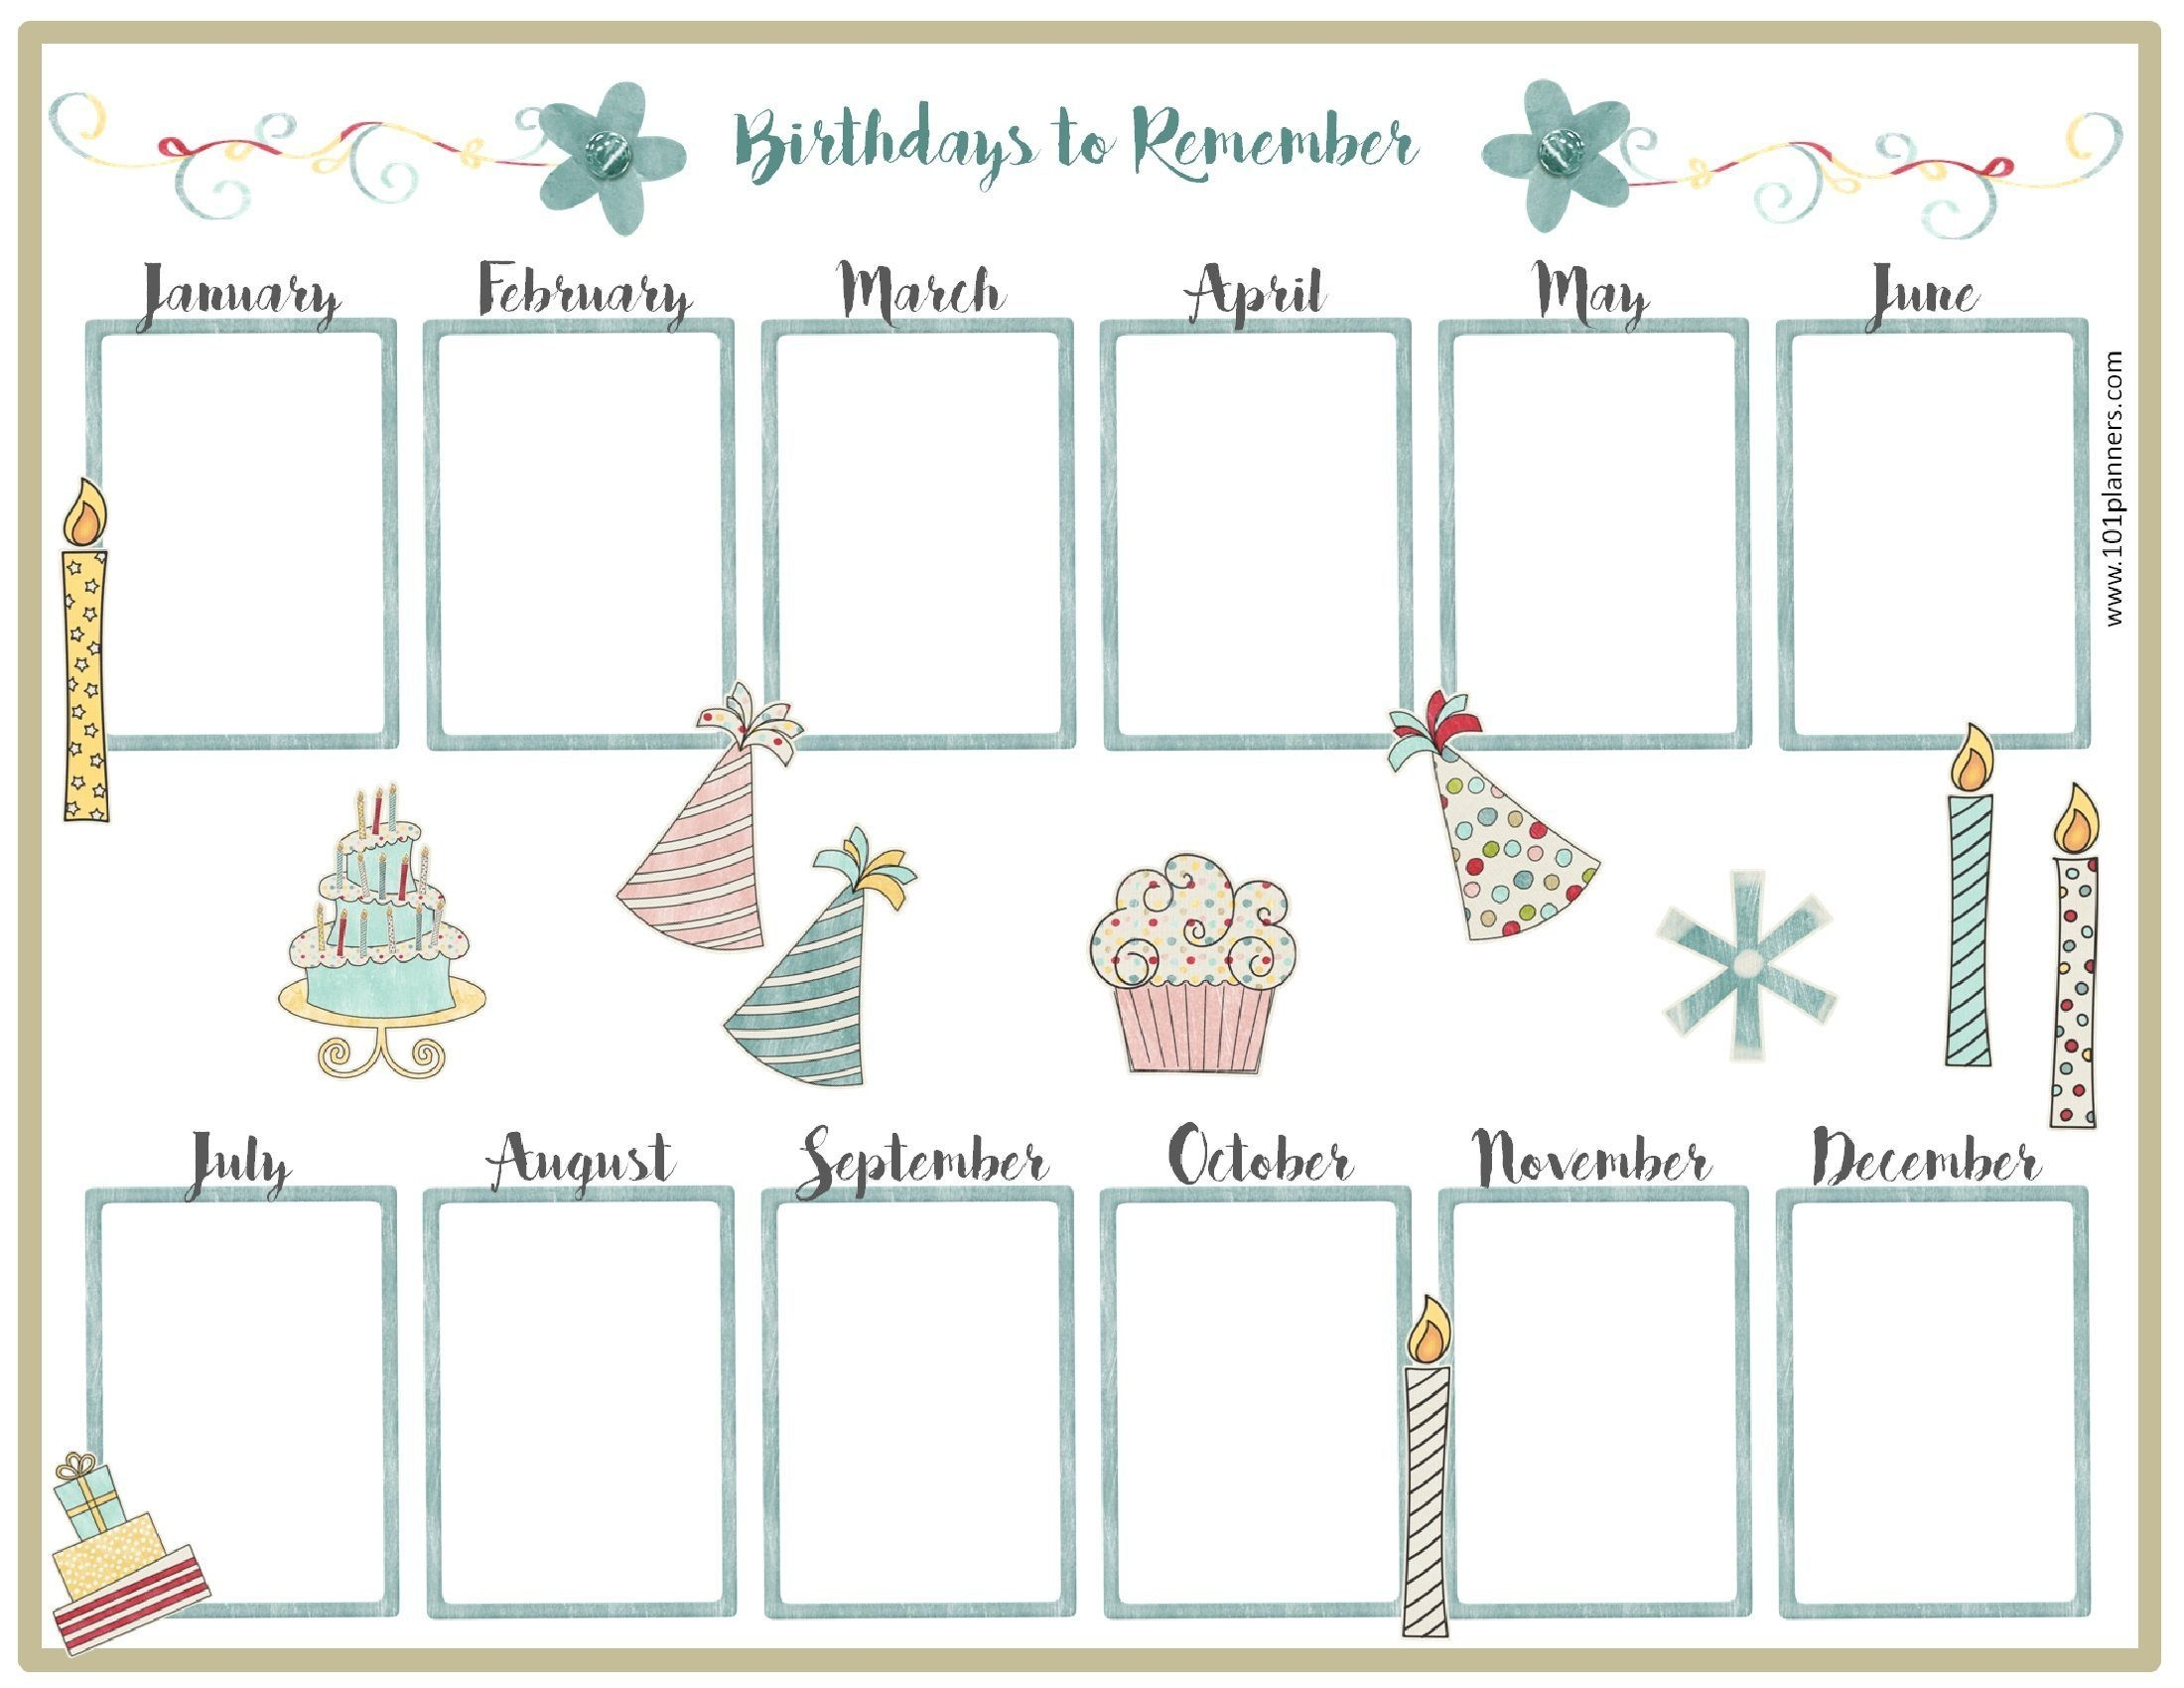 Birthday Calendar Template (With Images) | Family Birthday